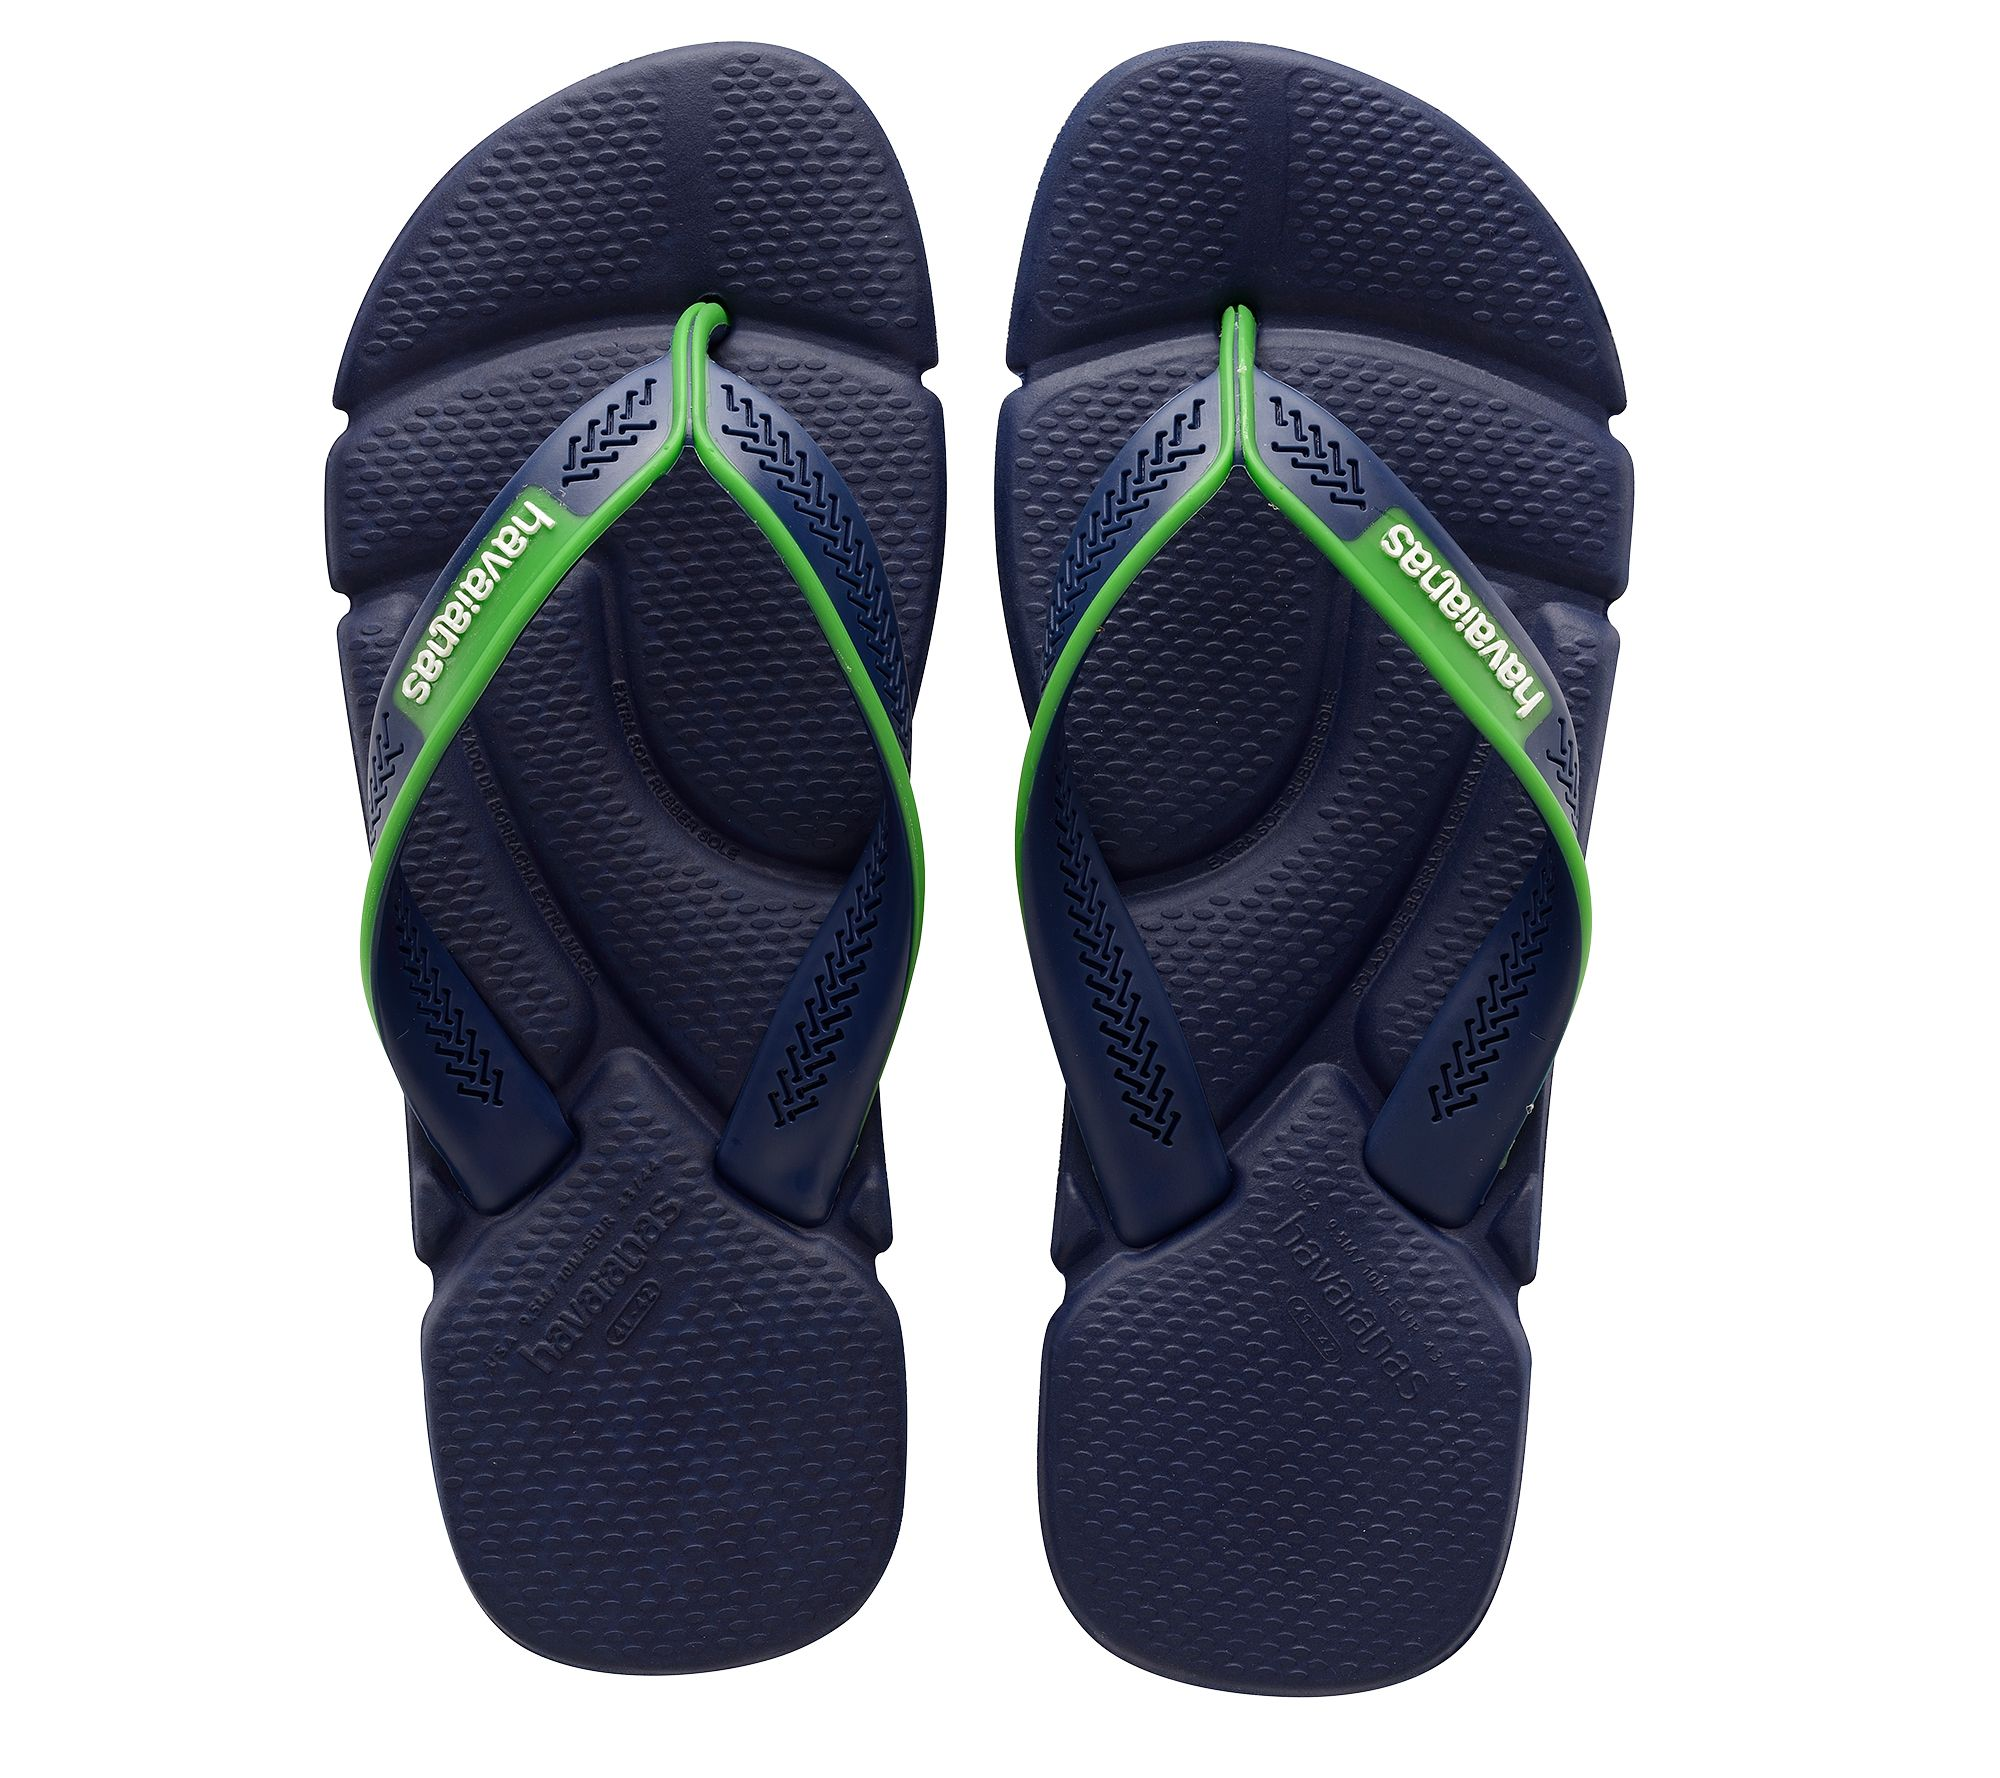 88fb6619ed2c10 Havaianas Men s Power Flip-Flops - Page 1 — QVC.com